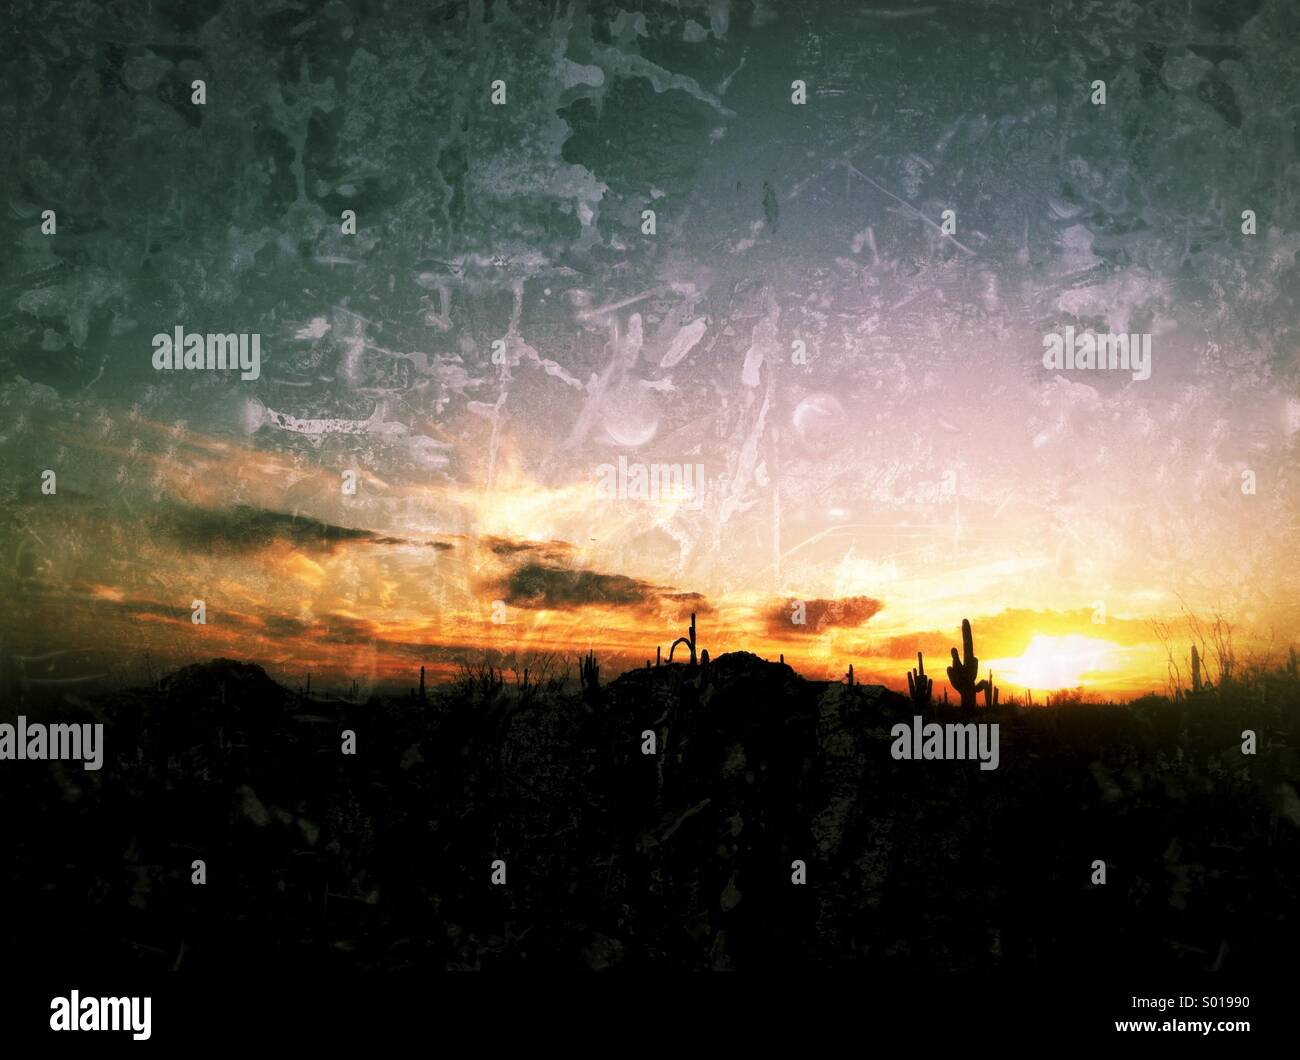 A classic southwestern sunset in Arizona. - Stock Image